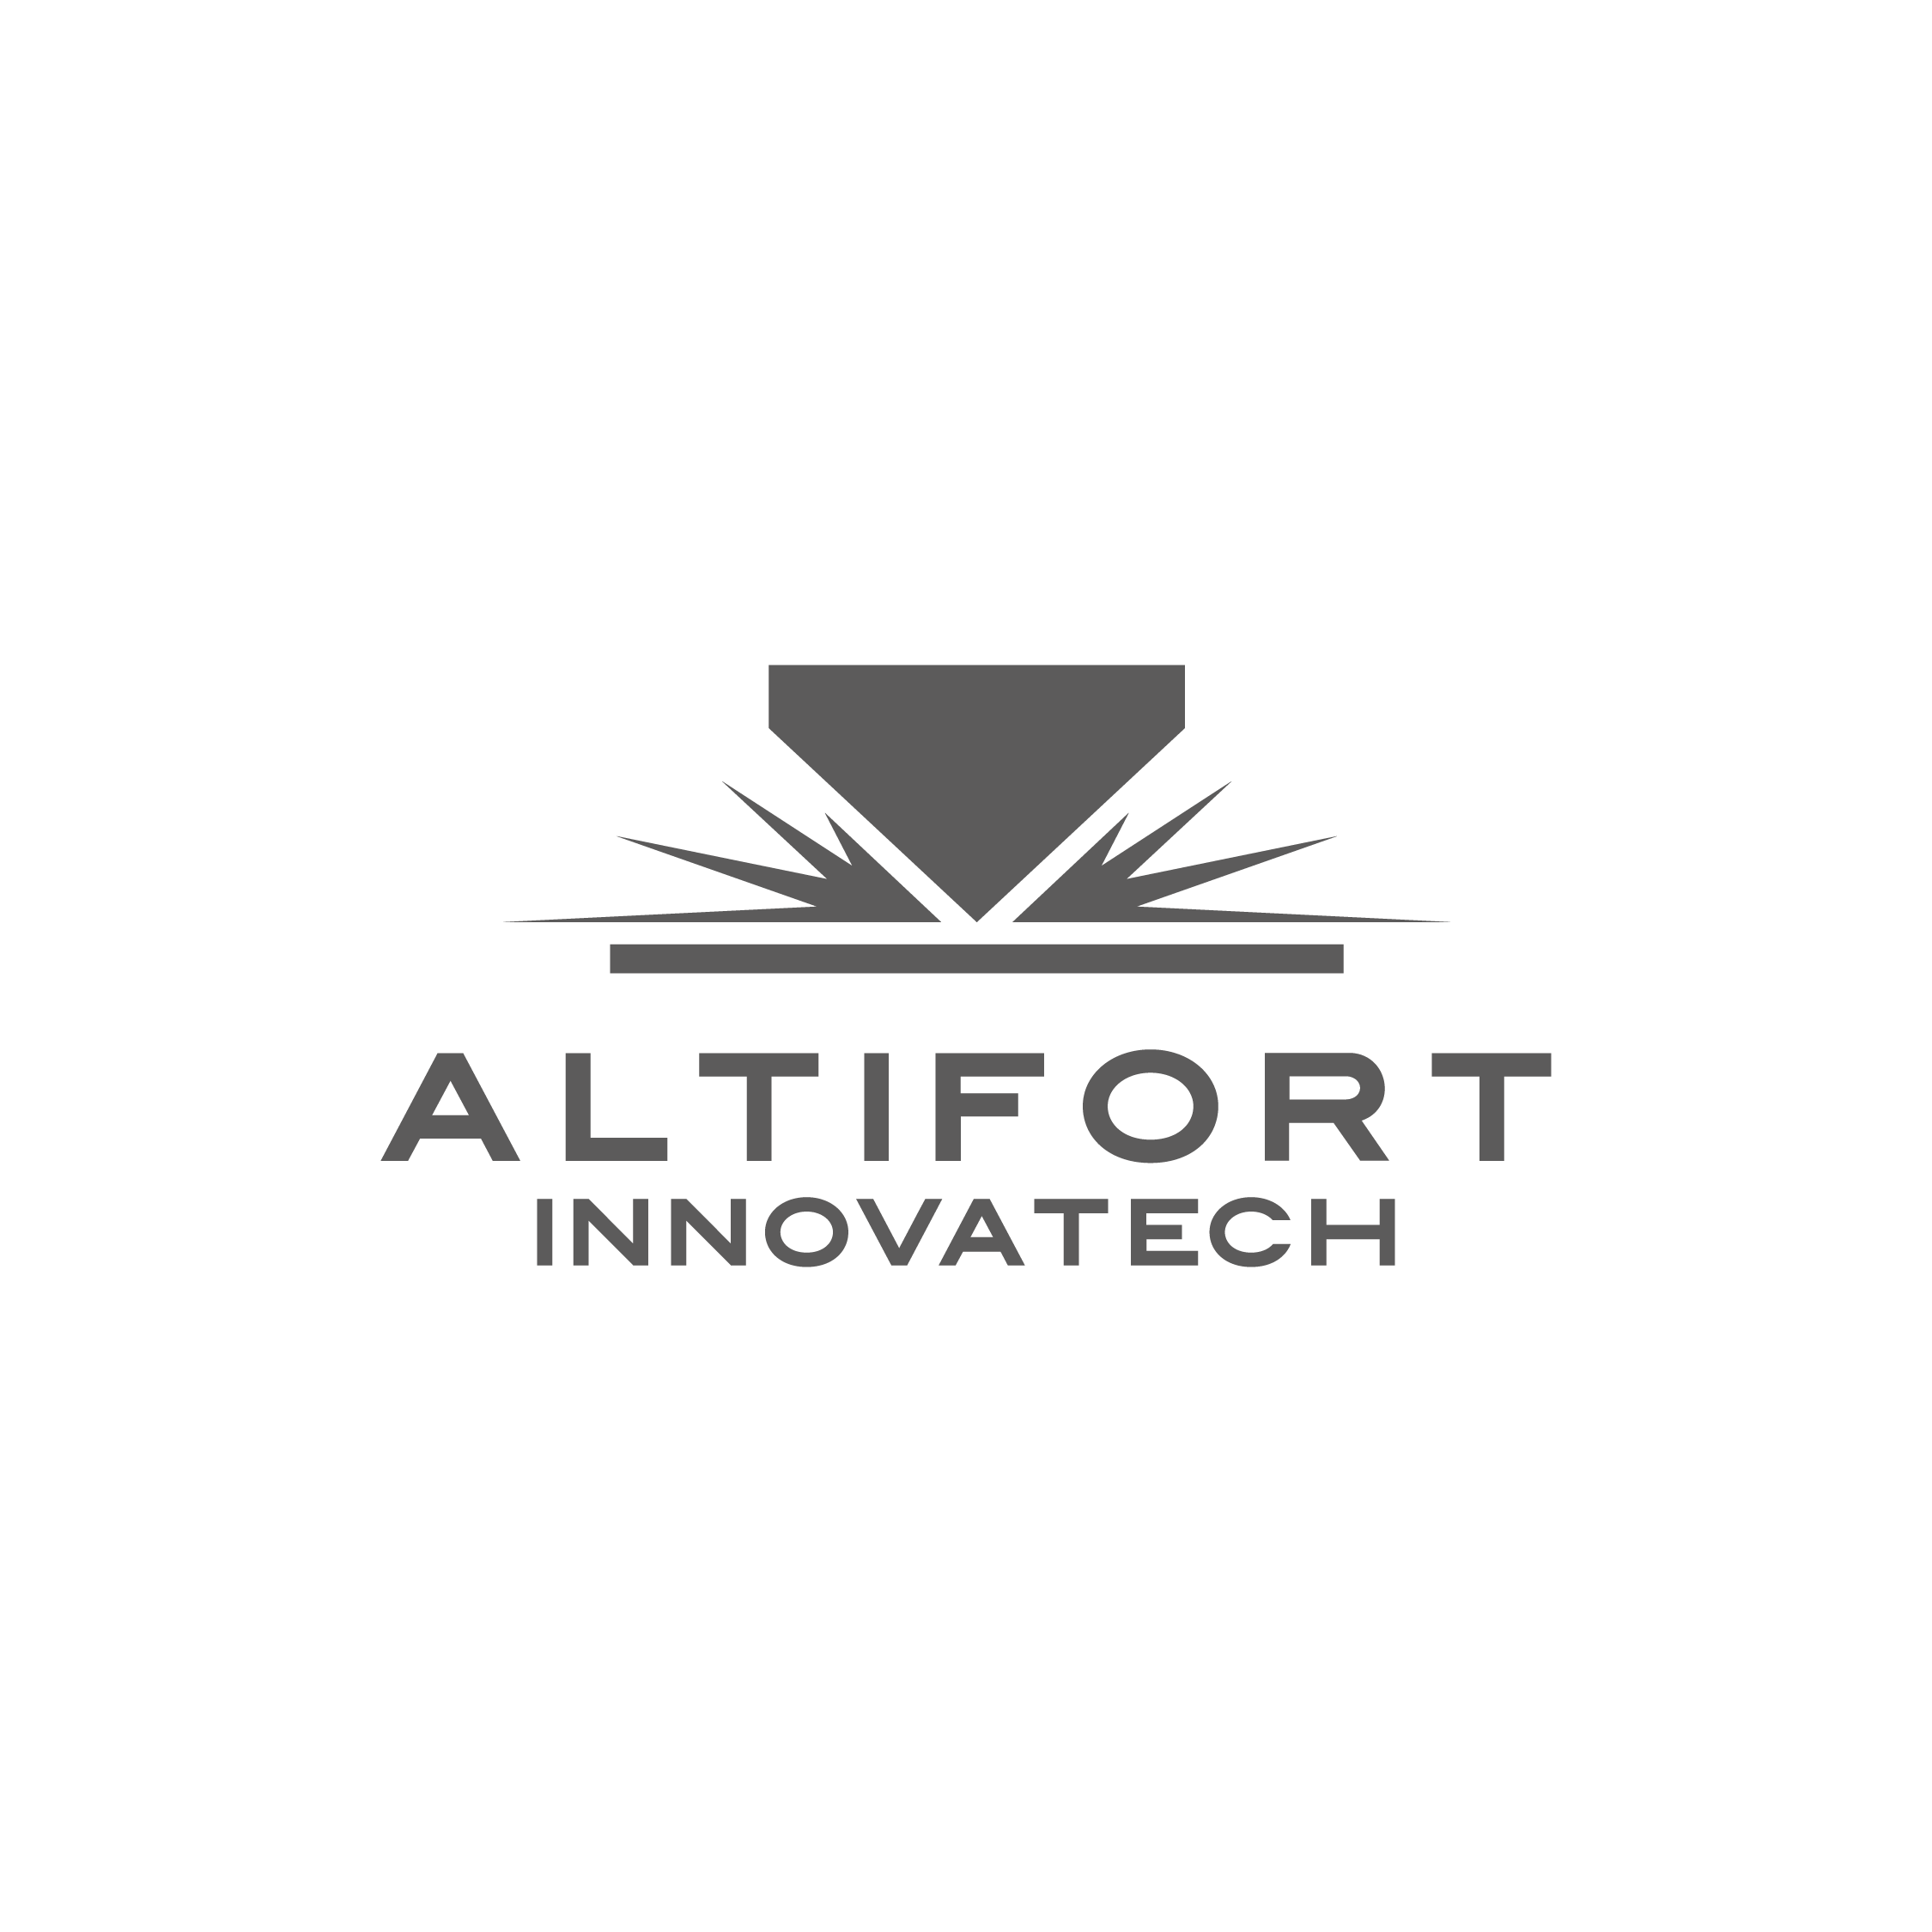 1575296708-altifort-innovatech.png